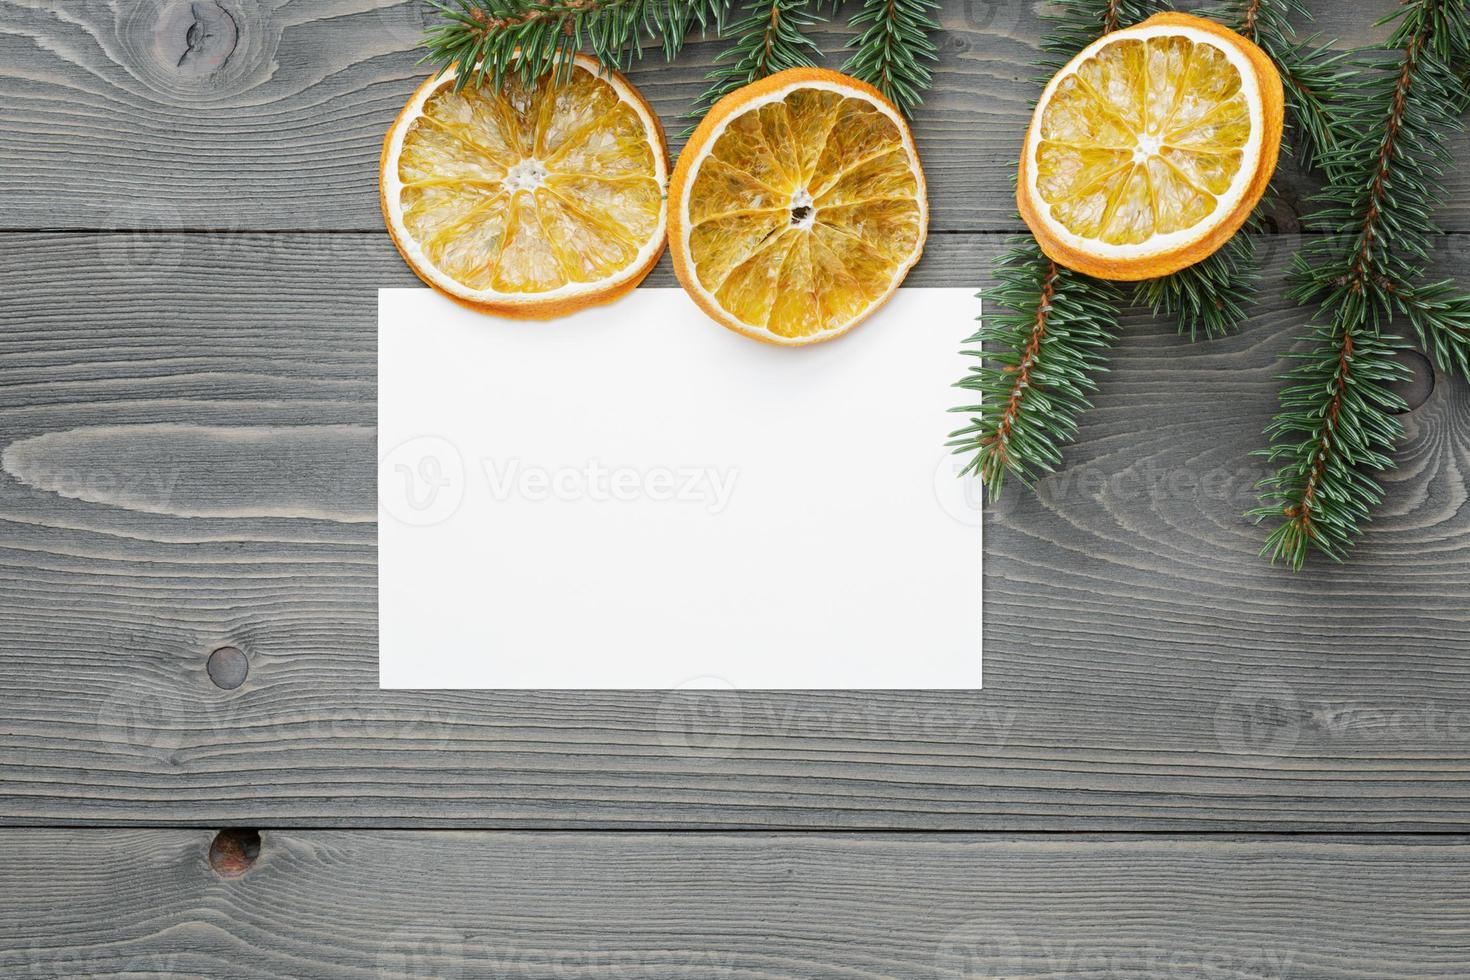 spruce twig with dried orange slices and greeting card photo